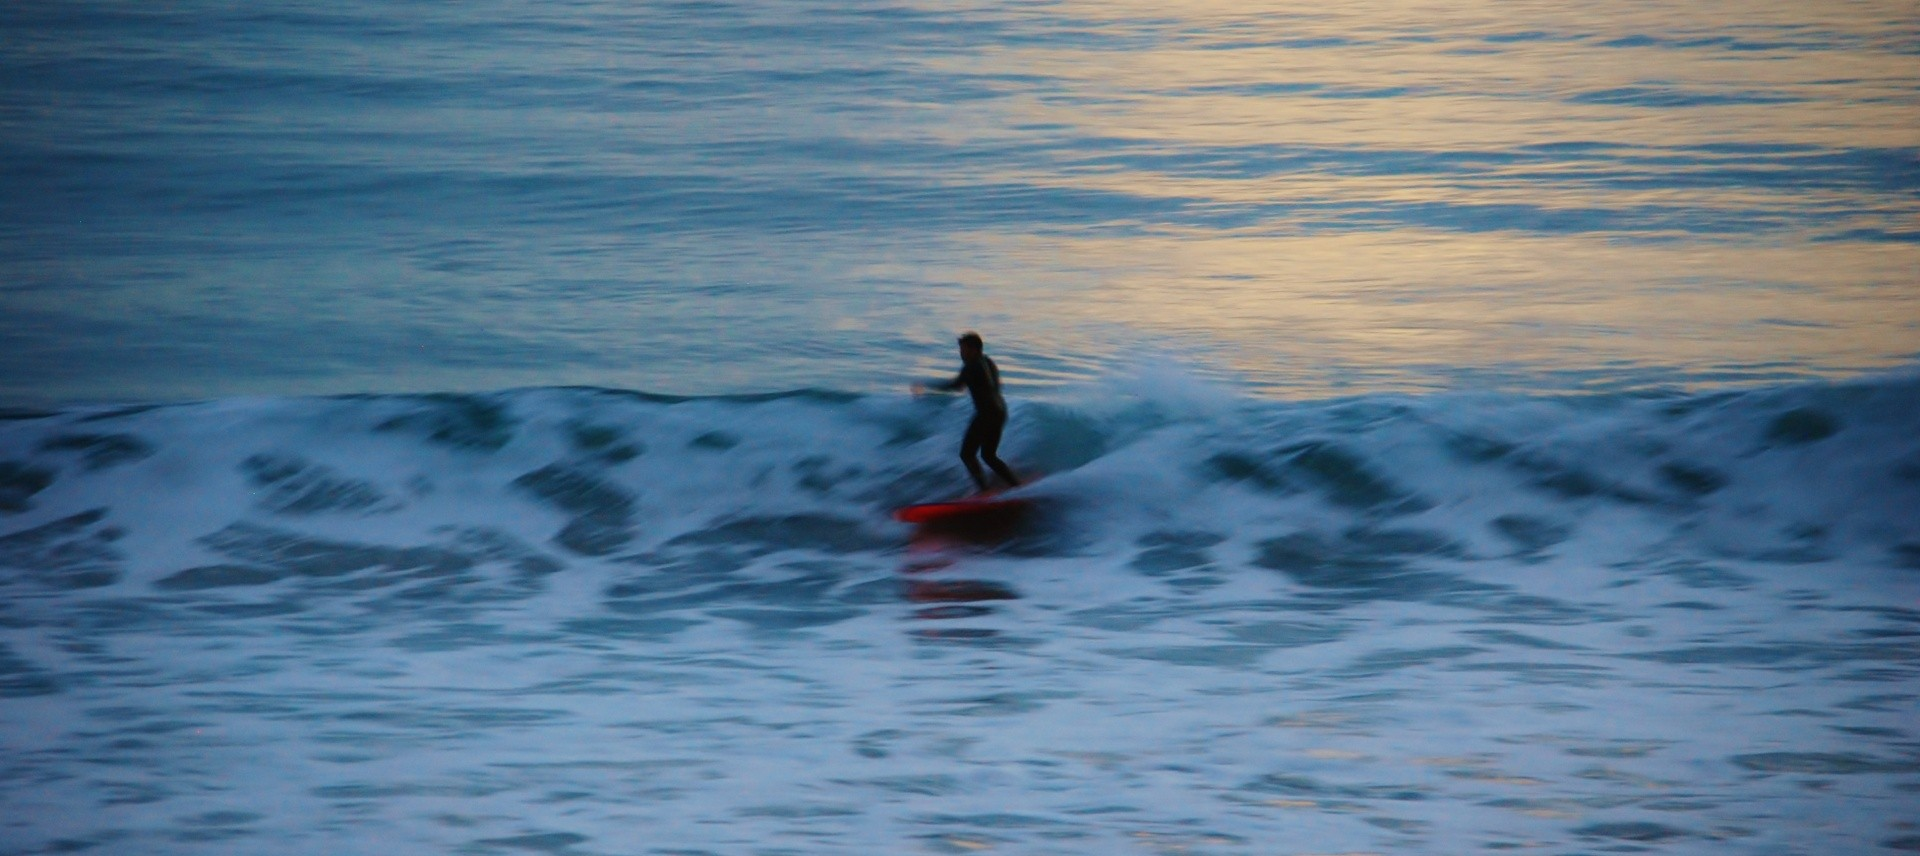 Surfer's photo of 204s